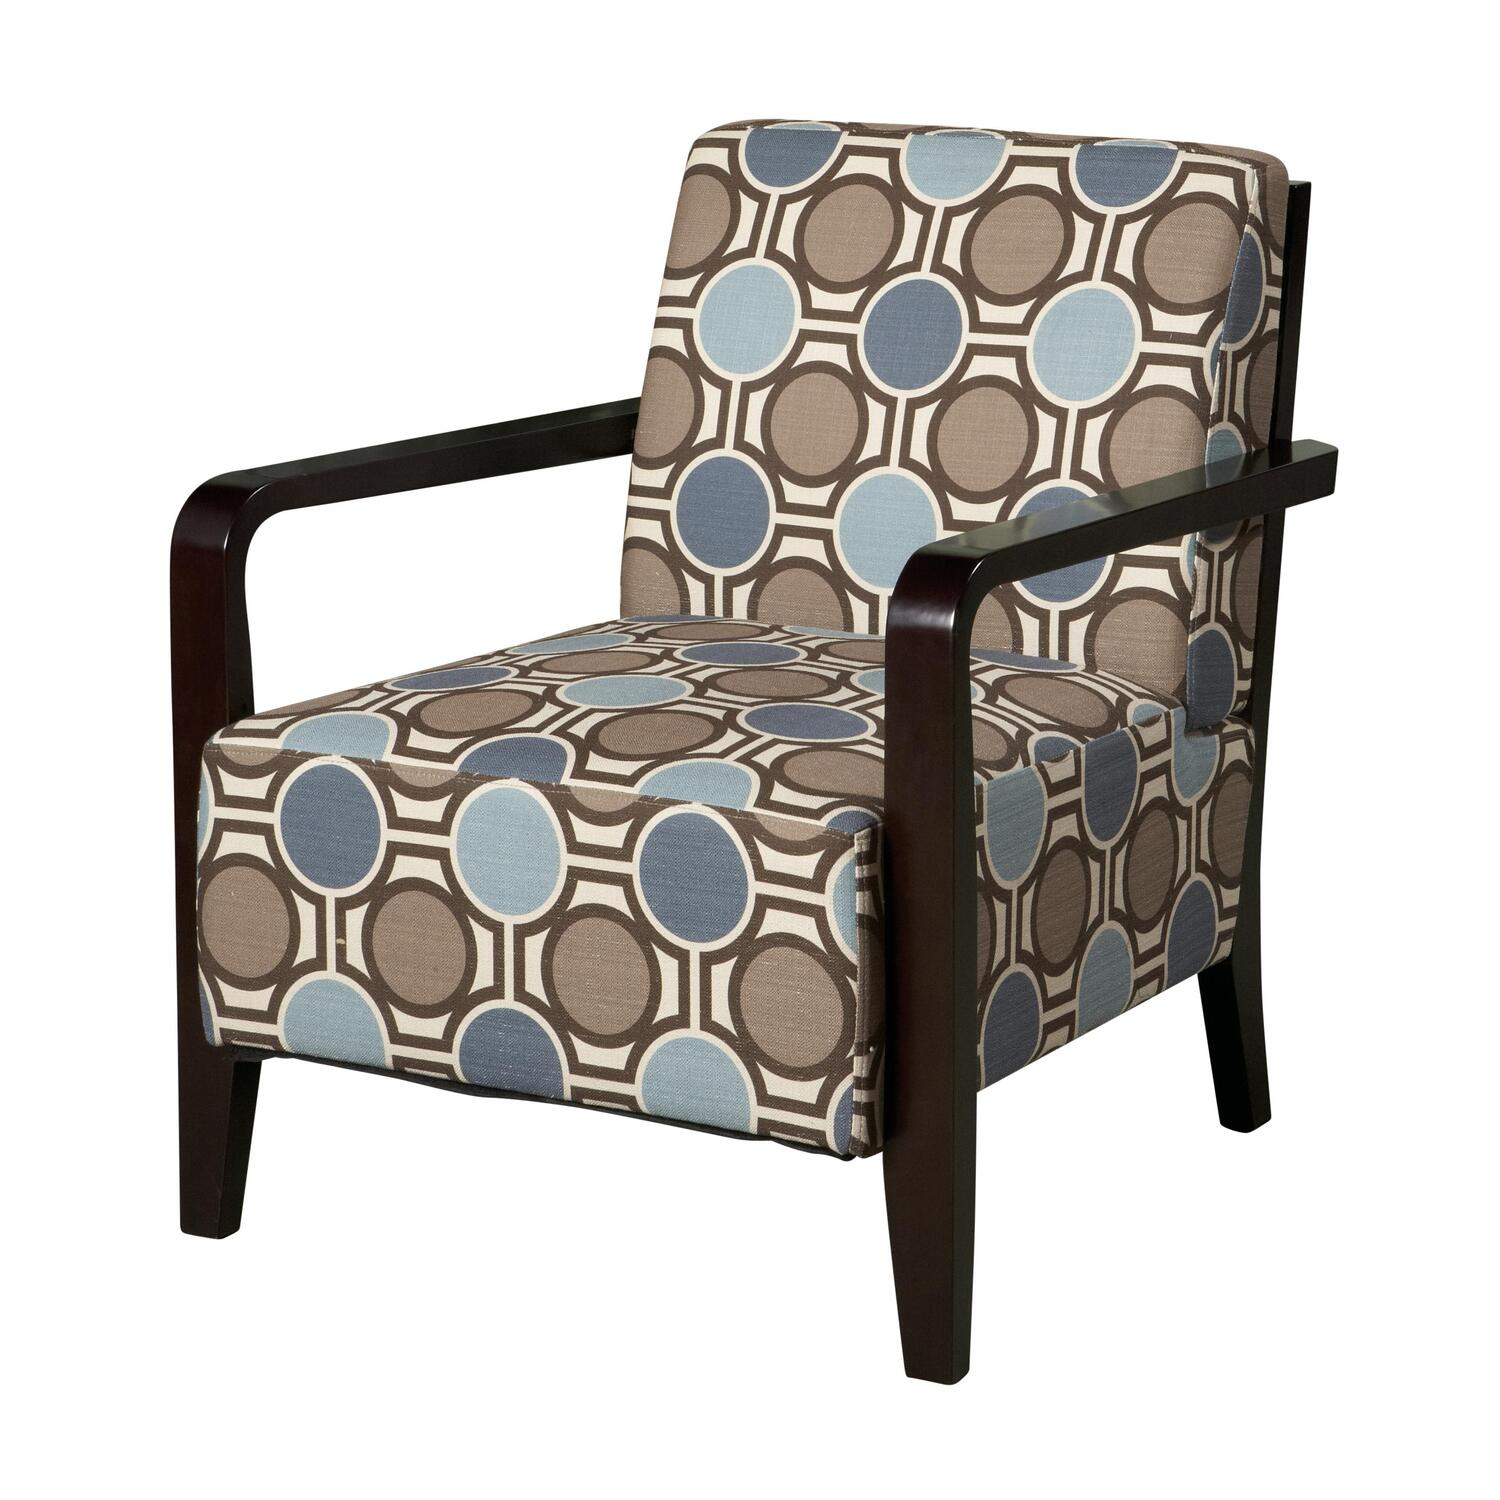 Comfortable Den Furniture Powell Bentwood Arm Accent Chair By Oj Commerce 882 620